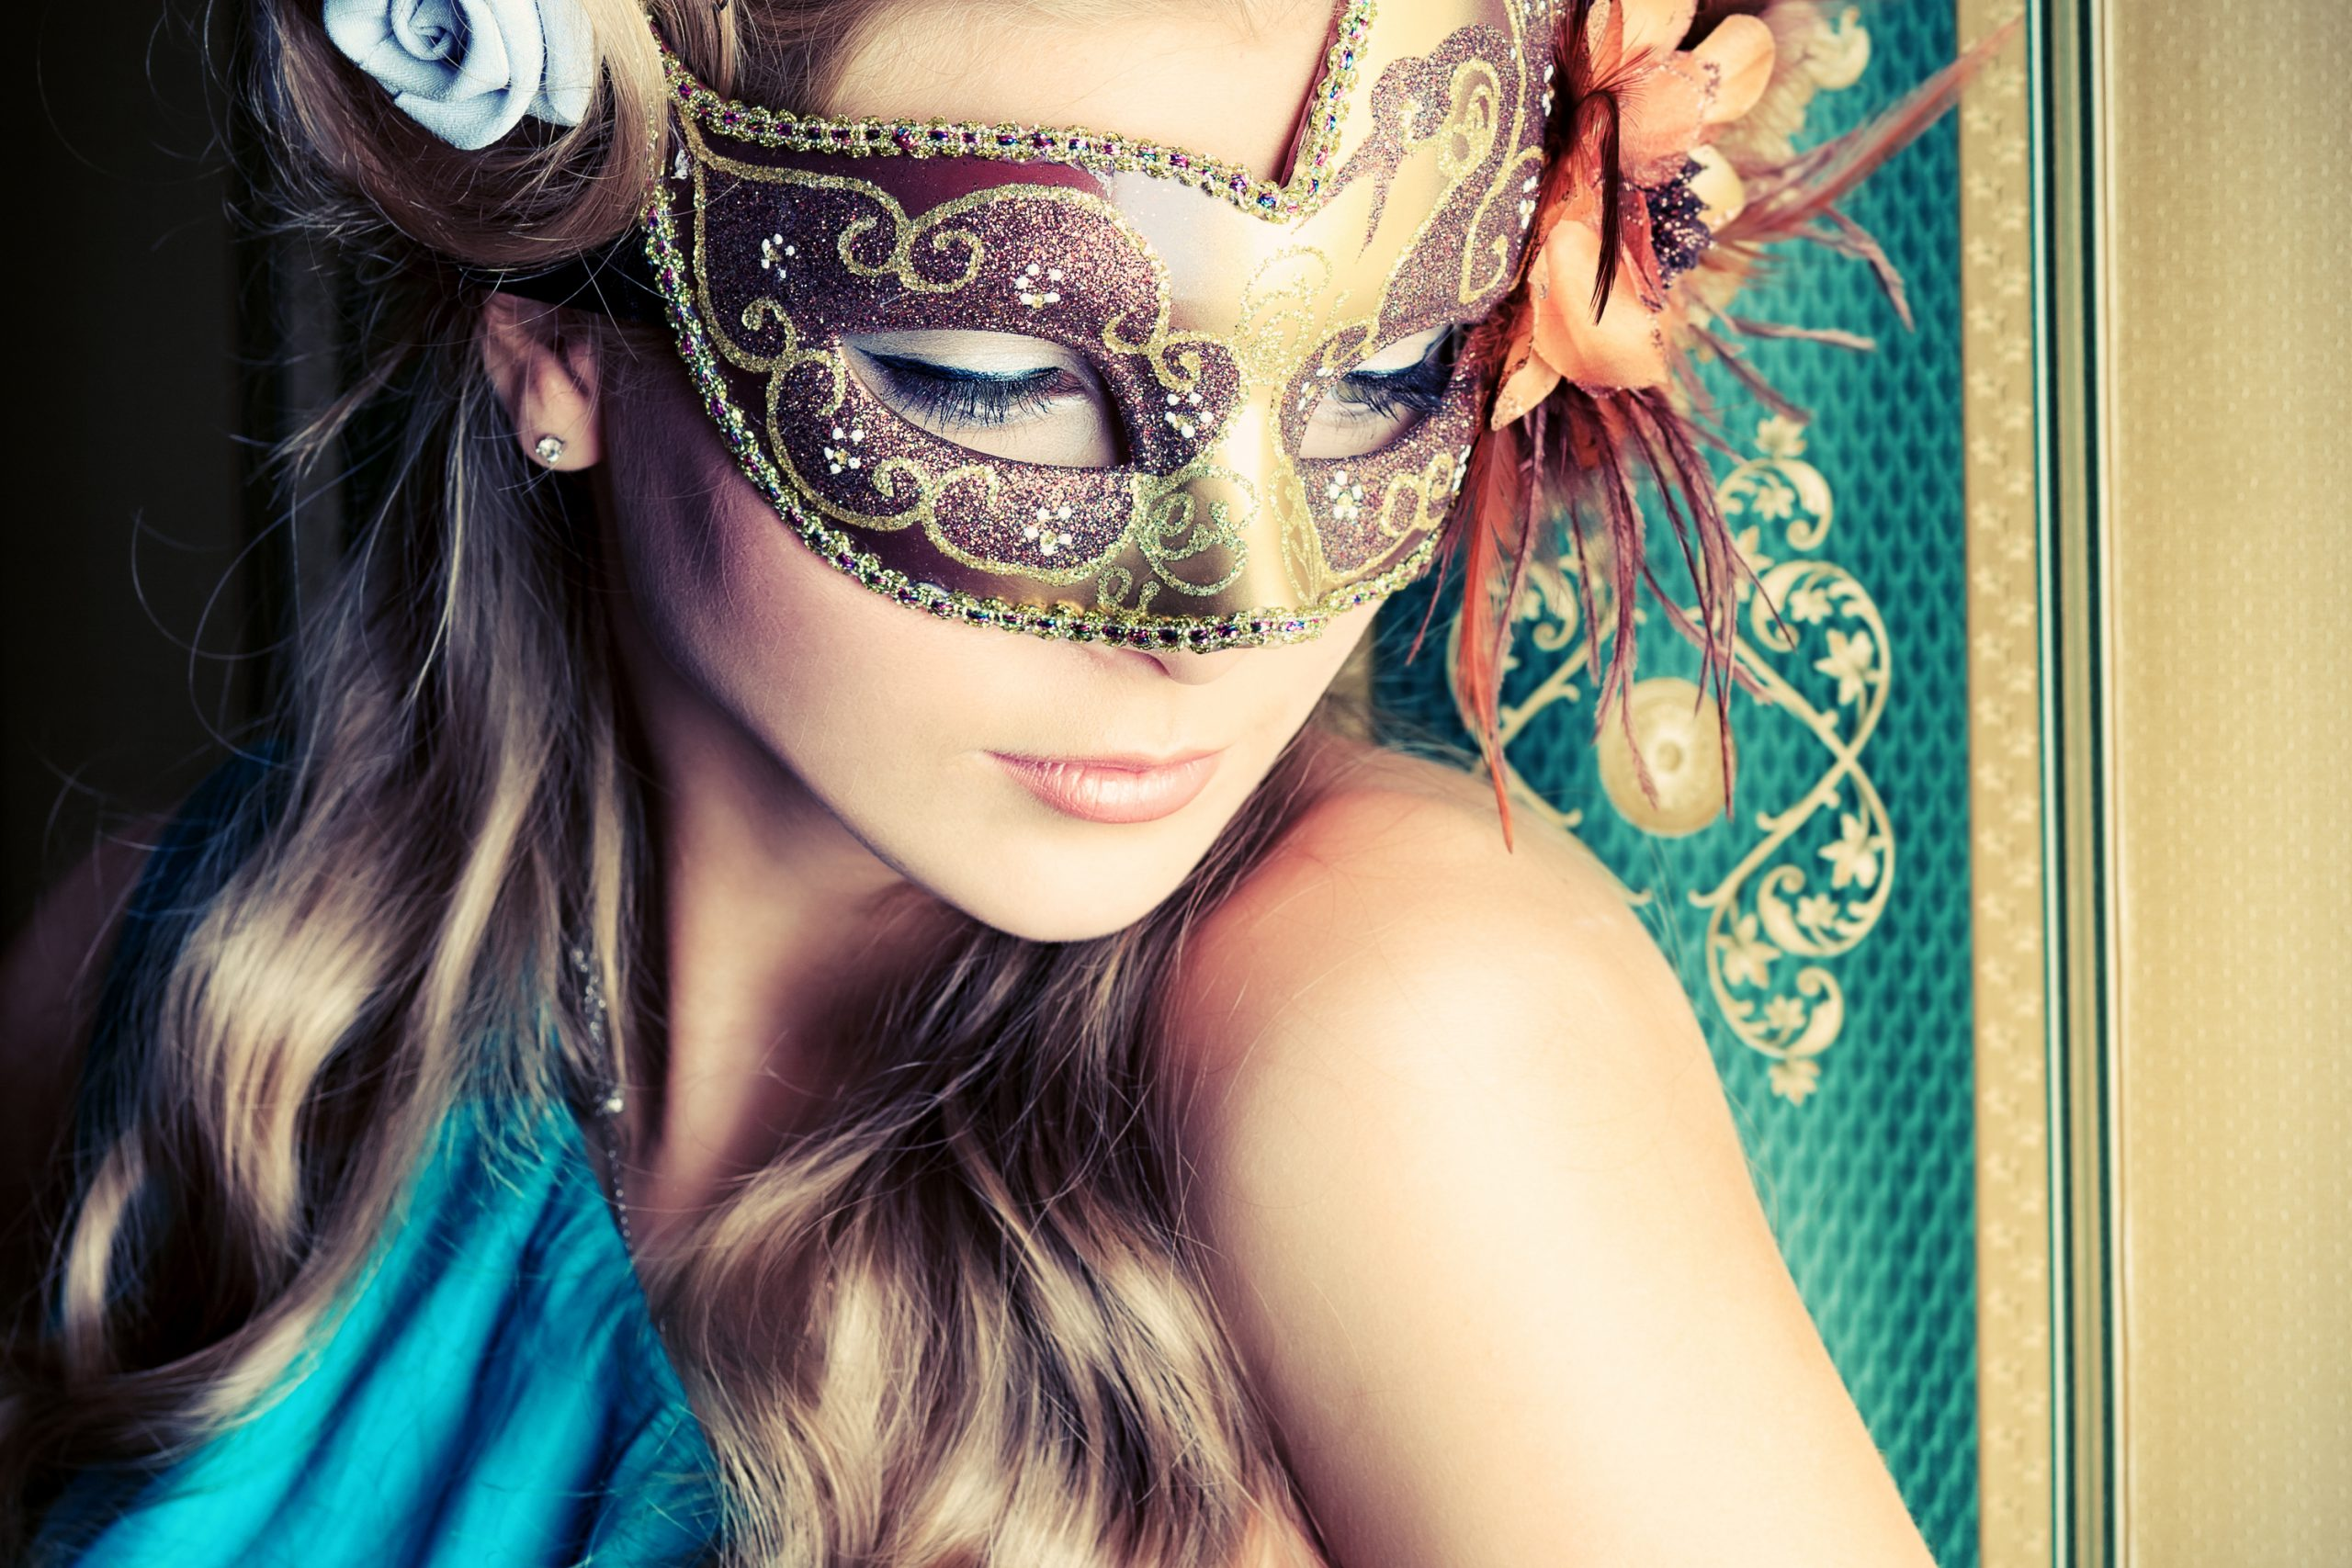 One of the most popular party ideas for New Years Eve is a masquerade party. Here are the best masquerade party ideas.